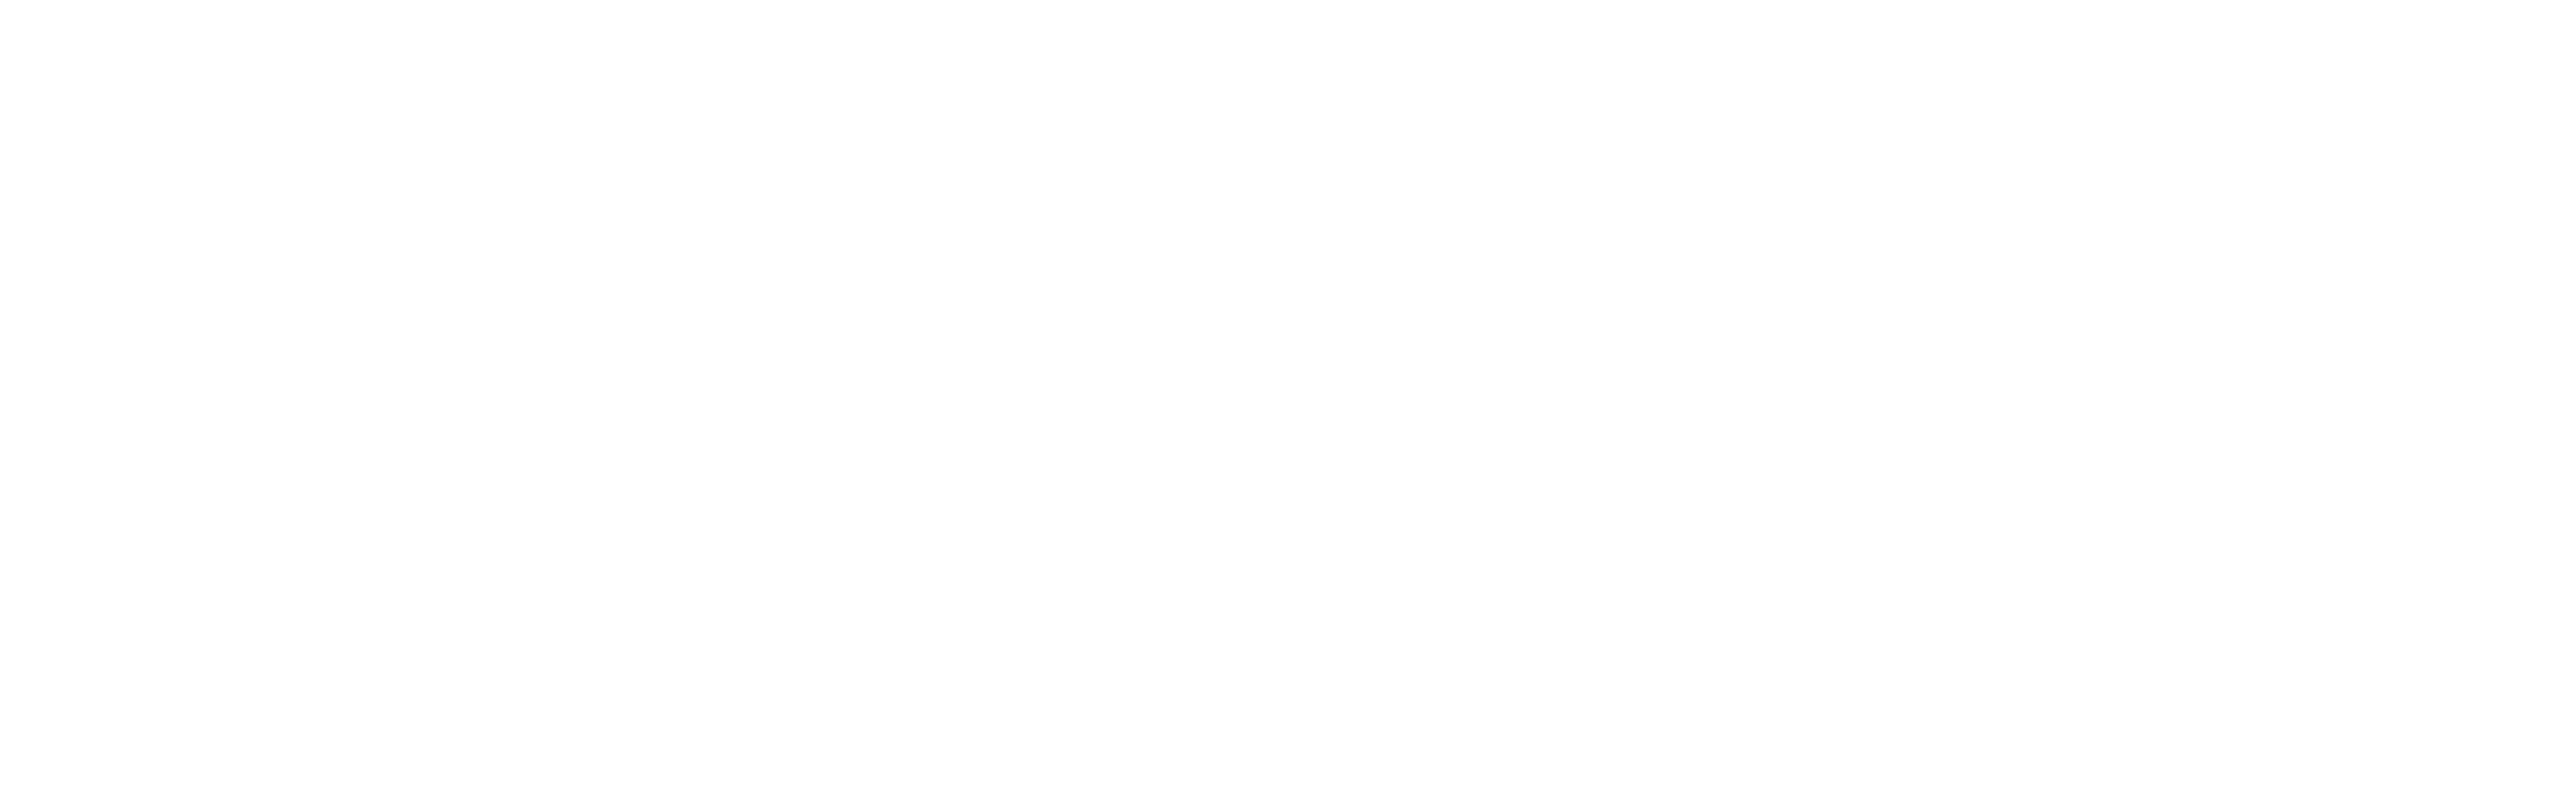 KazuCreations